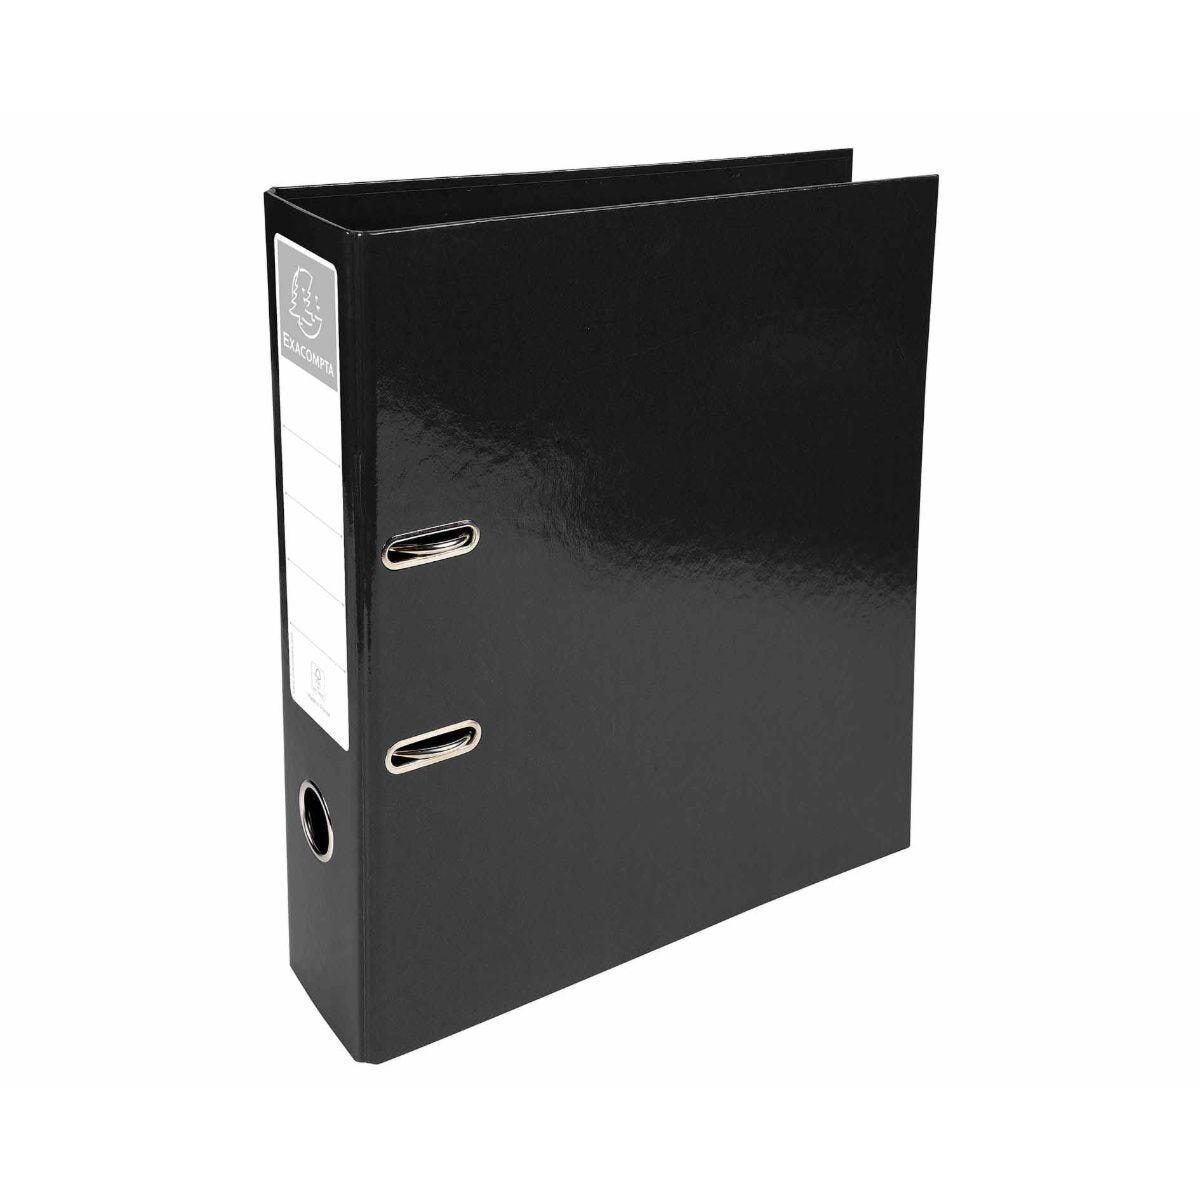 Exacompta Iderama PremTouch Lever Arch File A4 70mm Pack of 10 Black